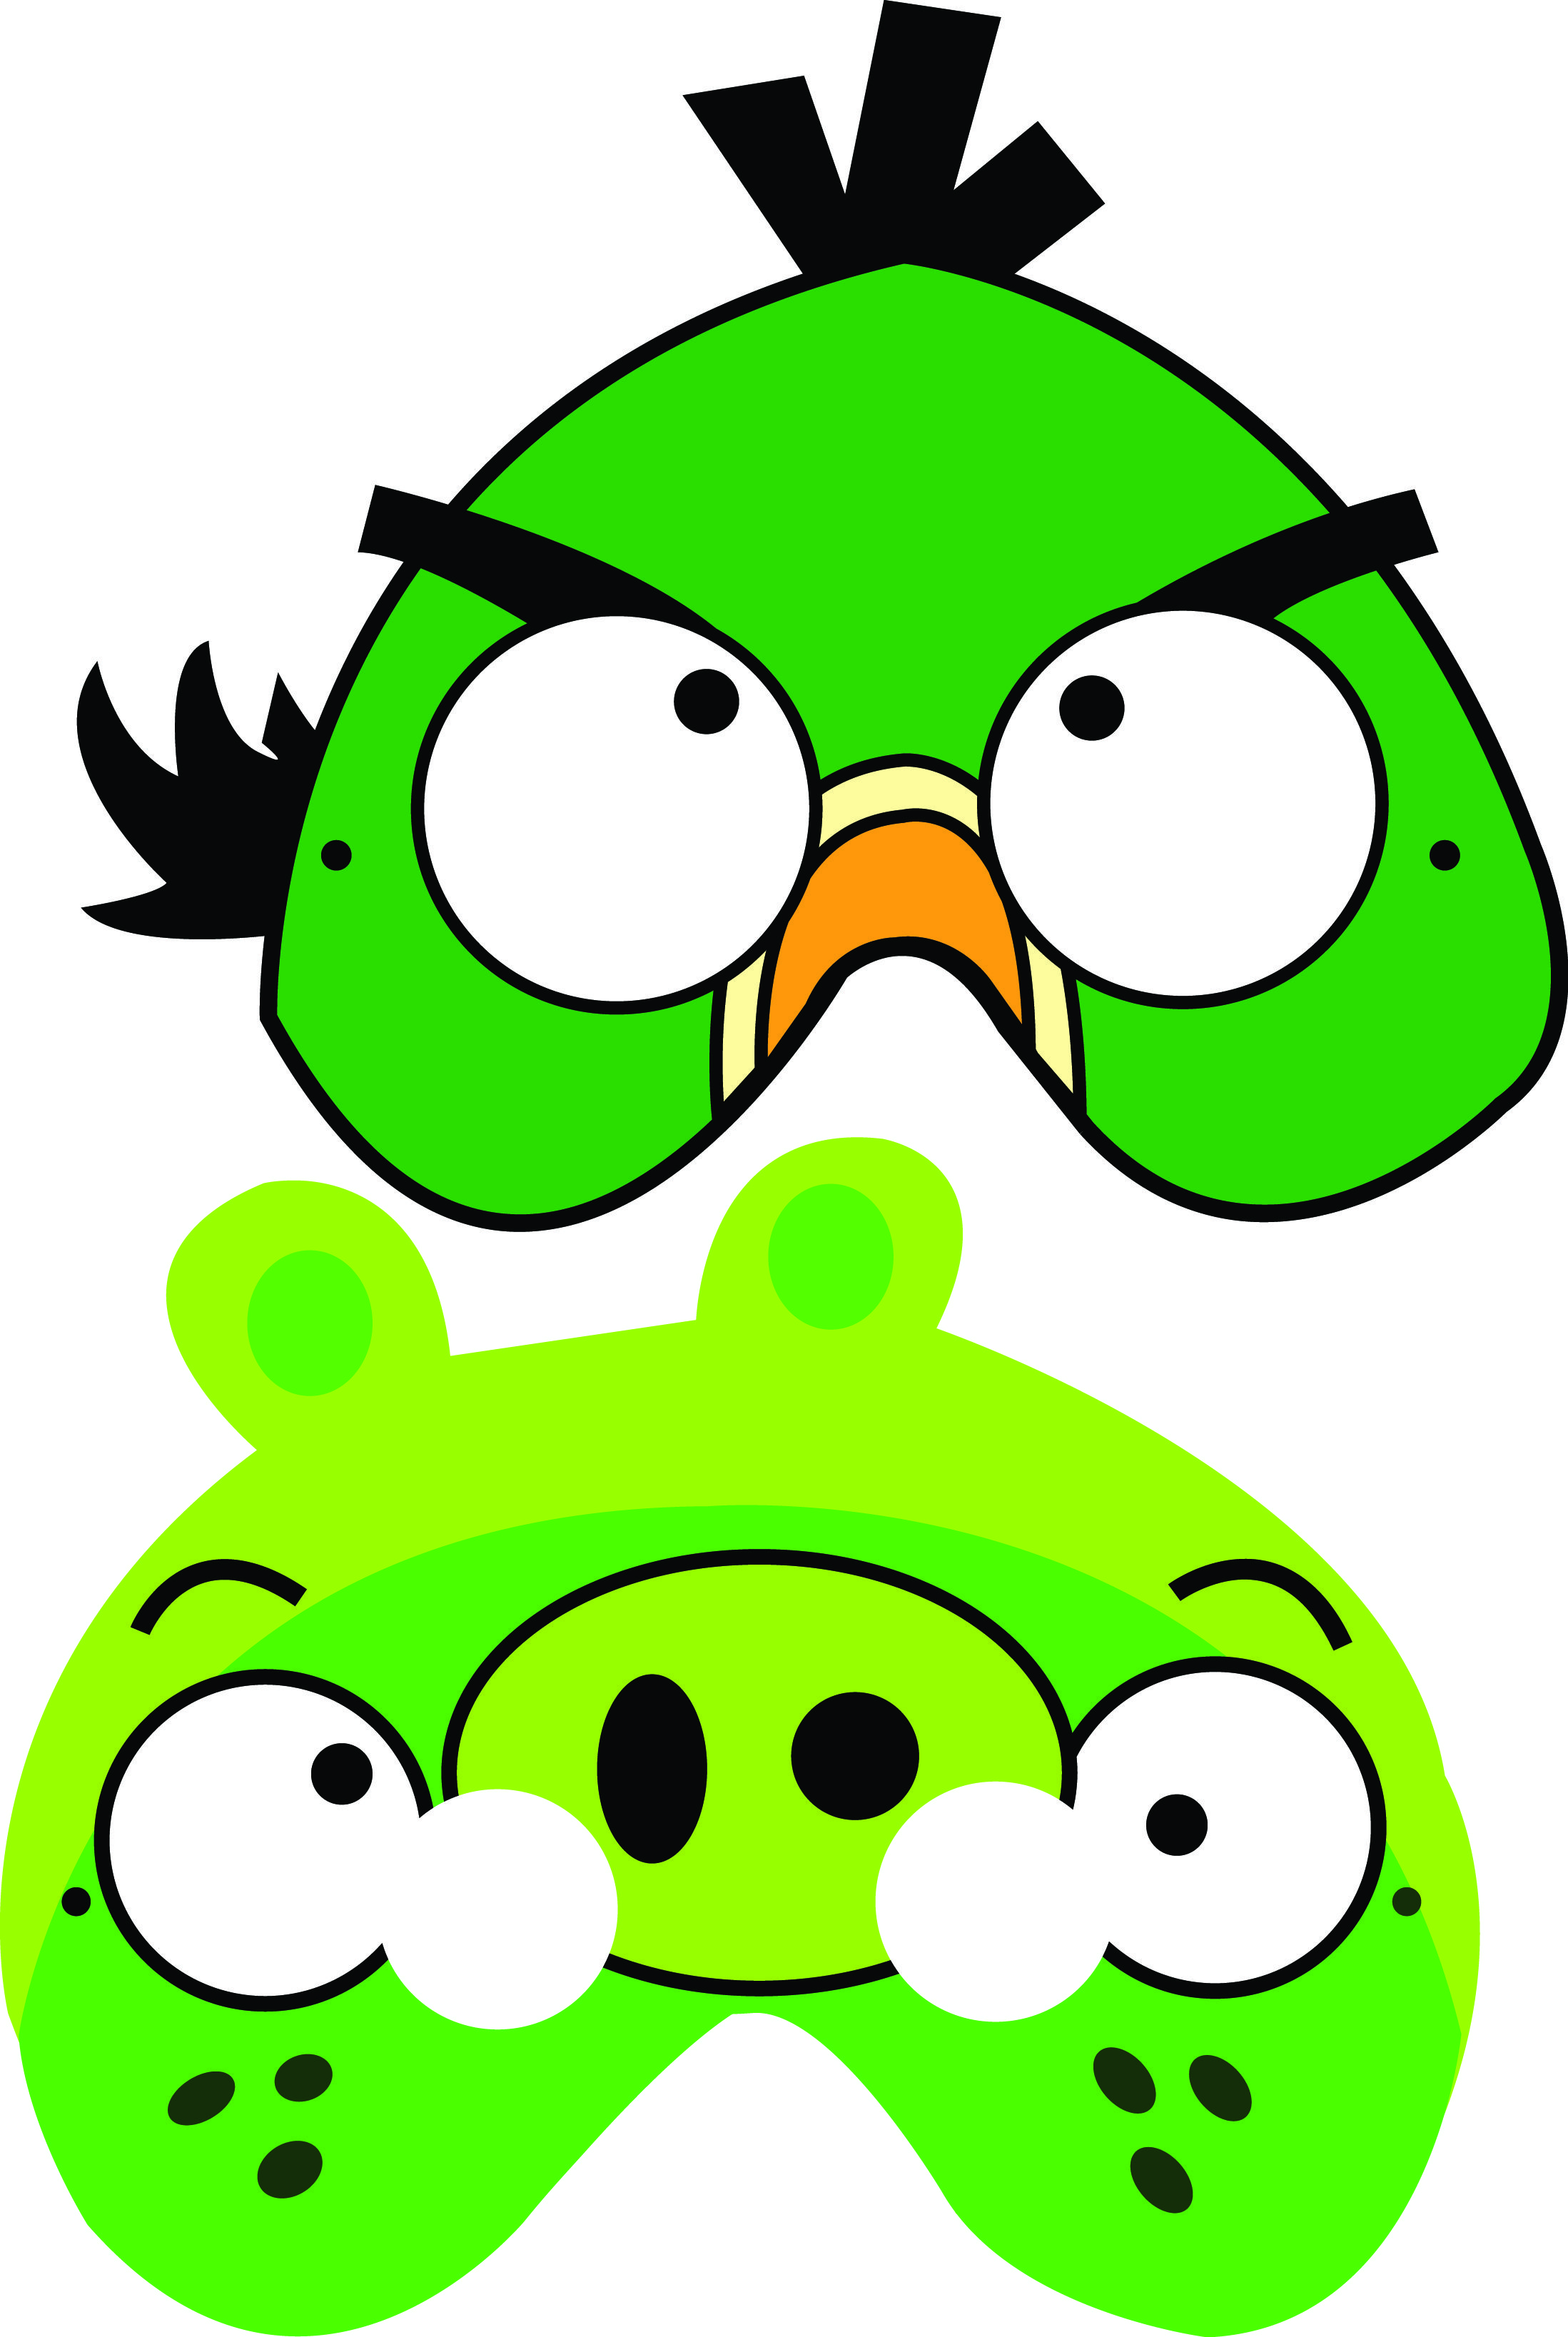 graphic relating to Angry Birds Printable Faces called totally free offended birds printable masks Little ones get together strategies Hen